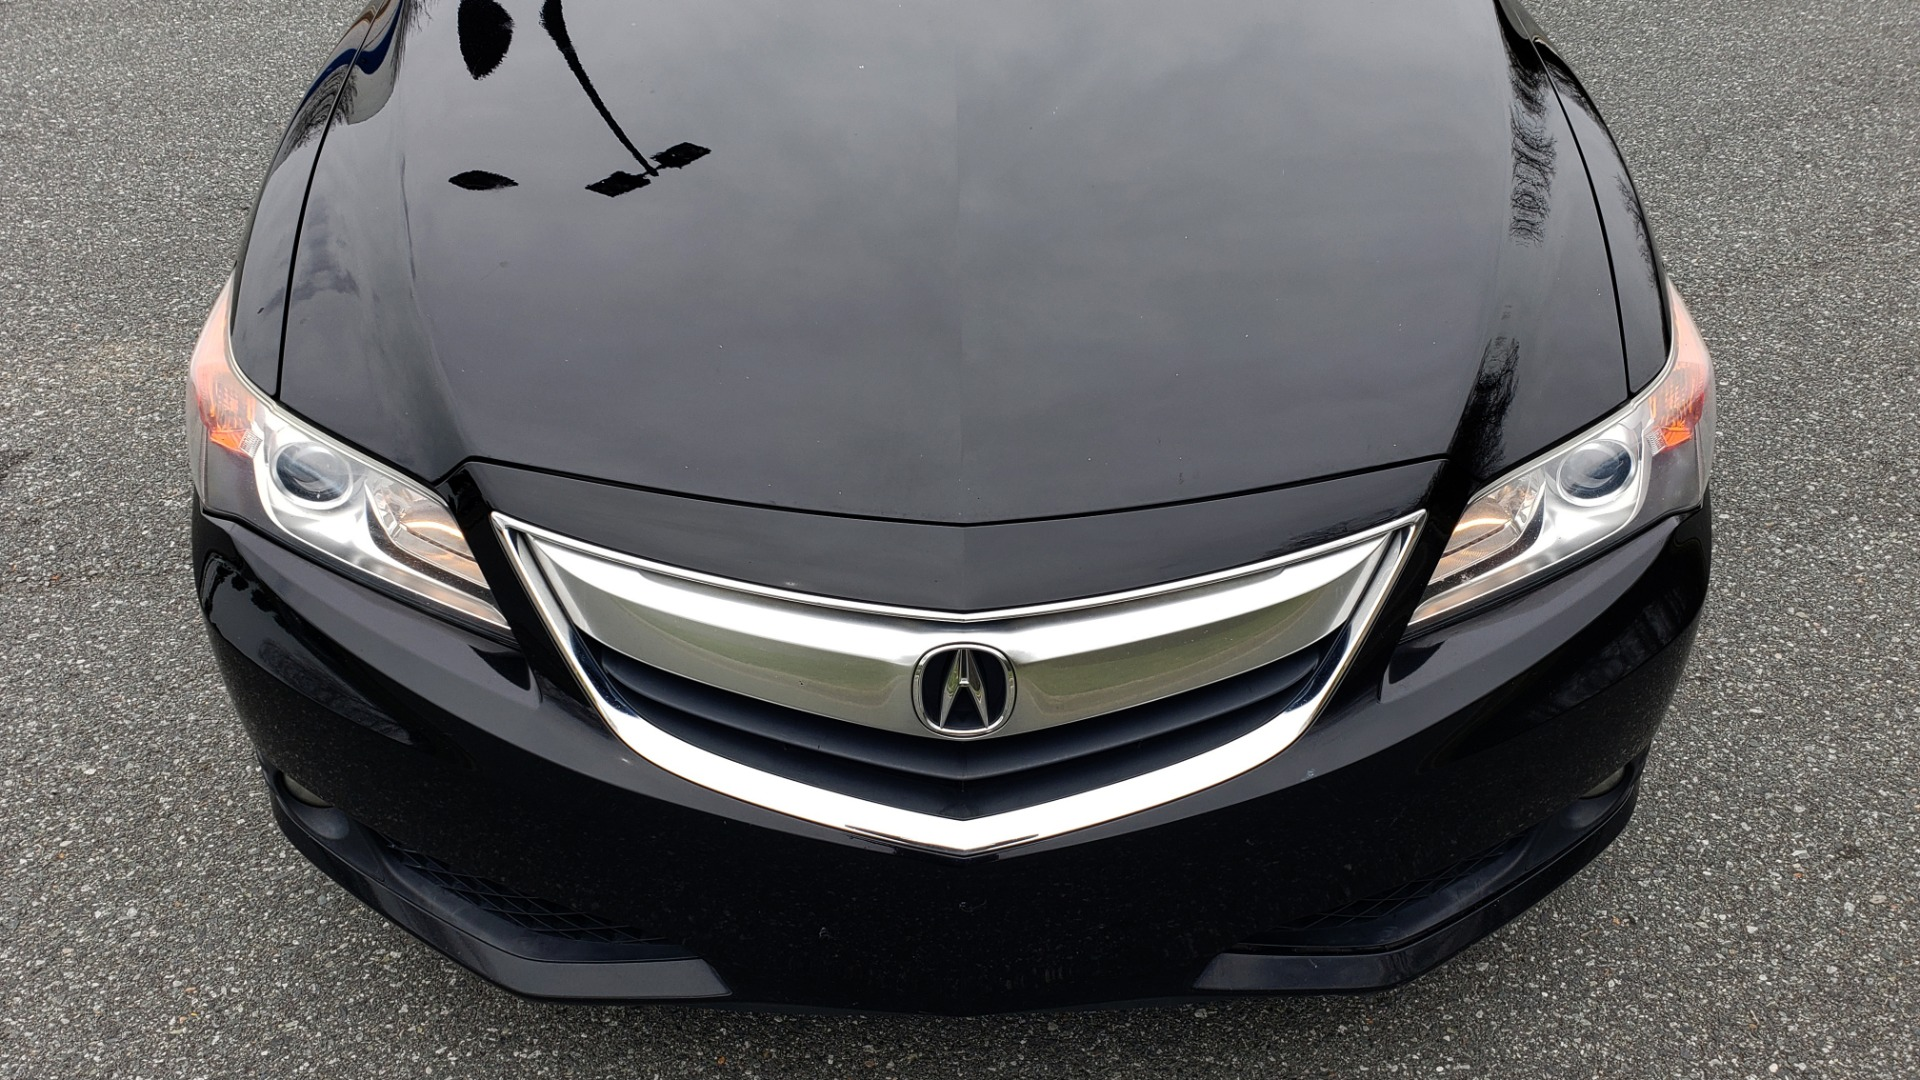 Used 2013 Acura ILX TECH PKG / SUNROOF / NAV / DUAL-ZONE A/C / REARVIEW for sale Sold at Formula Imports in Charlotte NC 28227 14